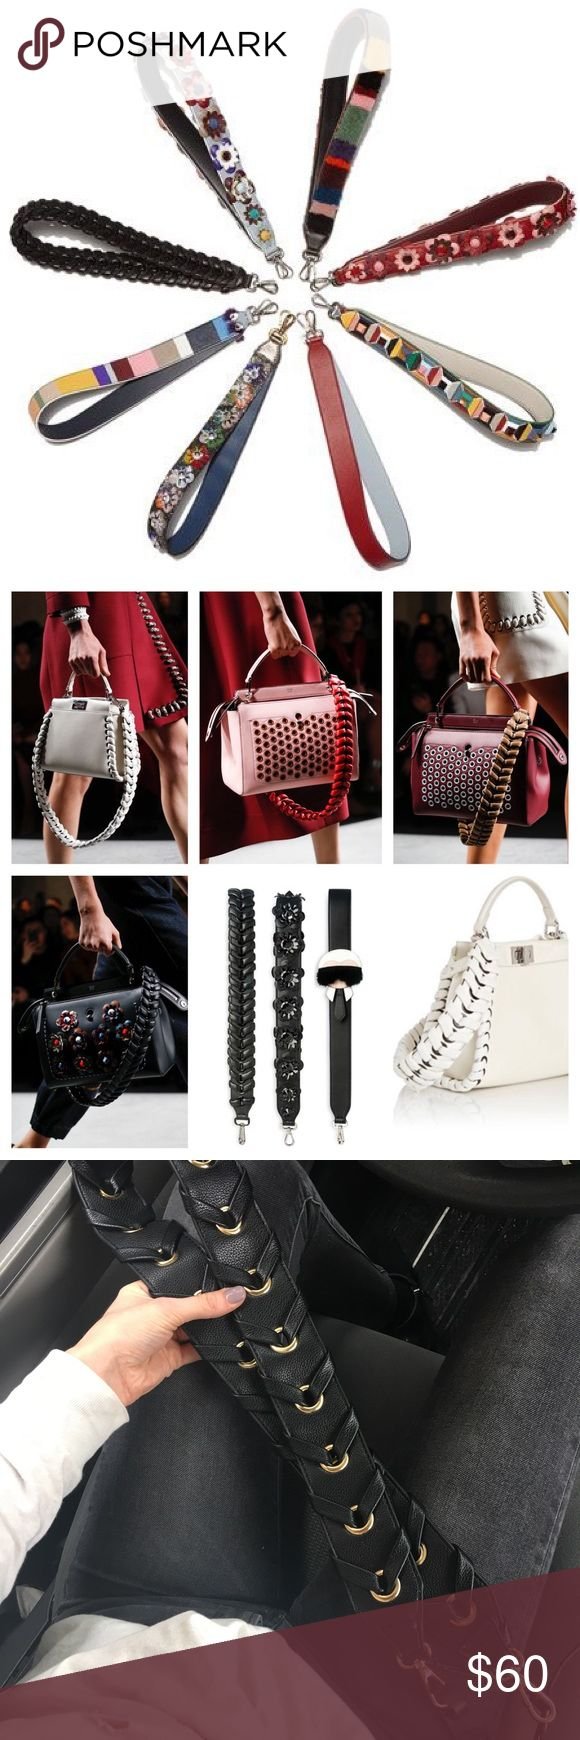 """Handbag Guitar Strap embellishment Mix & Match—personalize your bags. NWT - 30"""" black vegan leather strap with whipstitched detailing - gold hardware.  ****Please Note: these are not Fendi nor Fendi replicas—just inspired by the luxury designs of the runway. Fendi Accessories"""